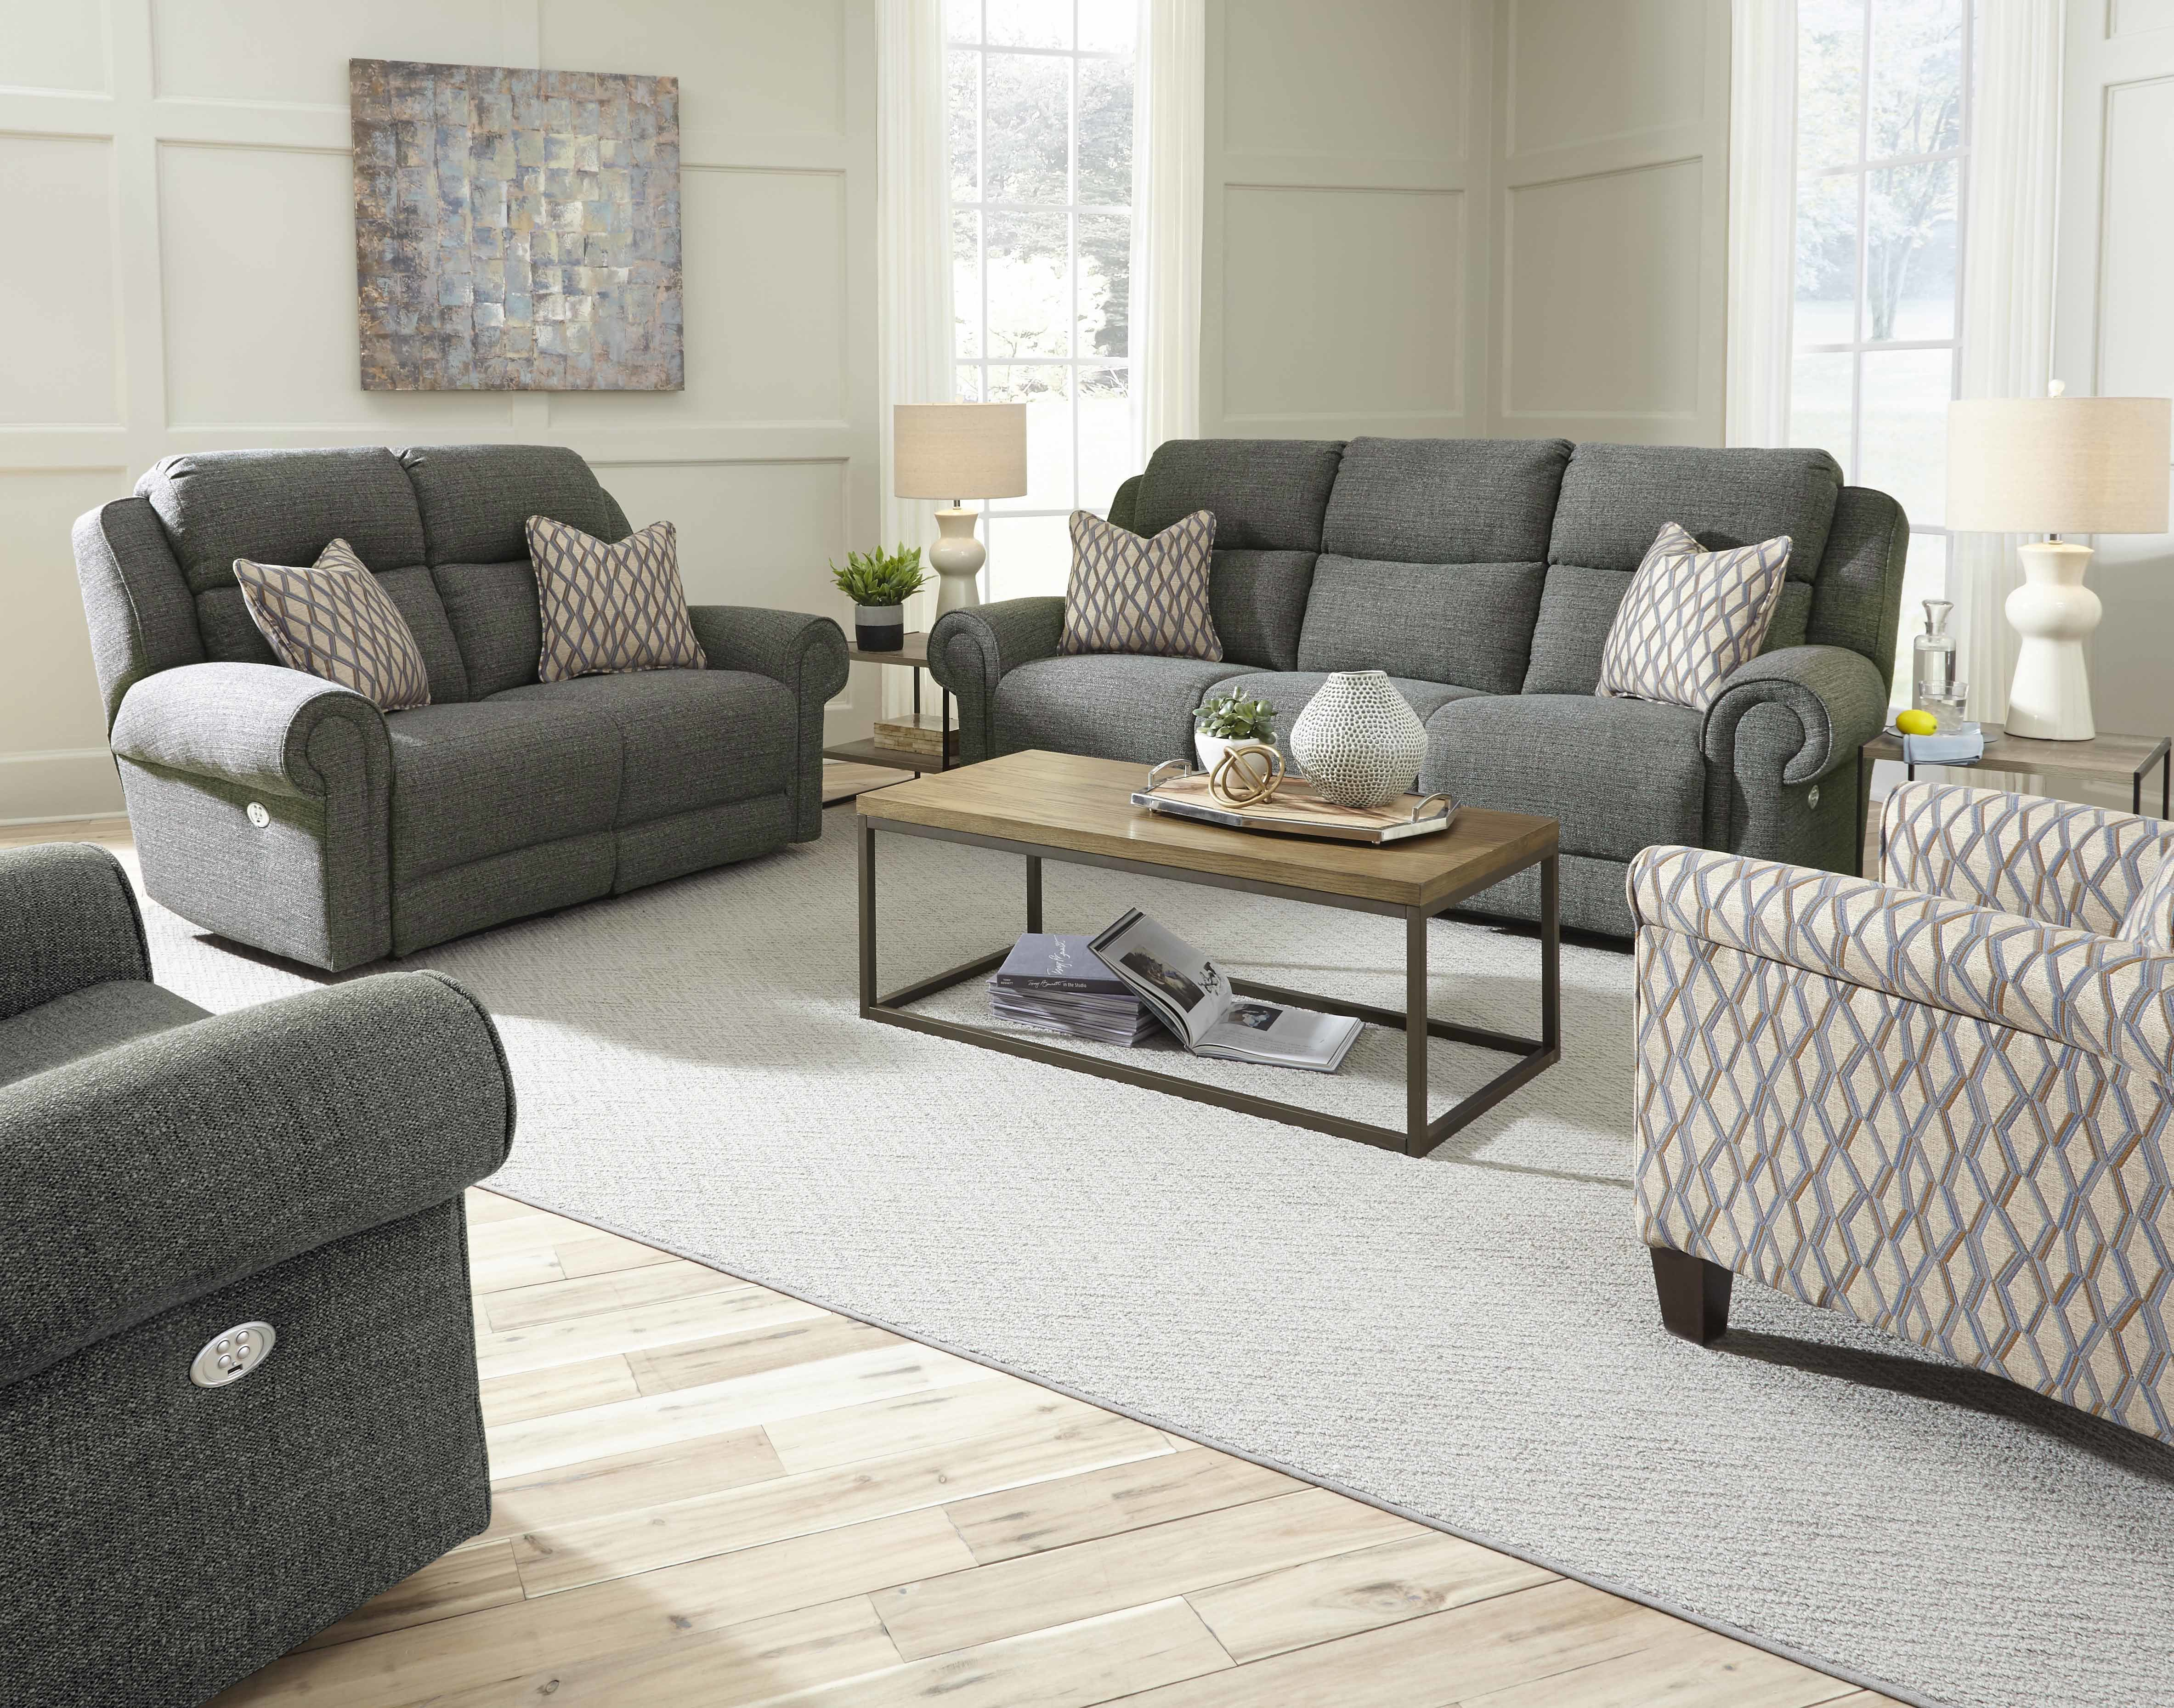 Canyon Ranch 2 Piece Reclining Living Room Set pertaining to Reclining Living Room Sets